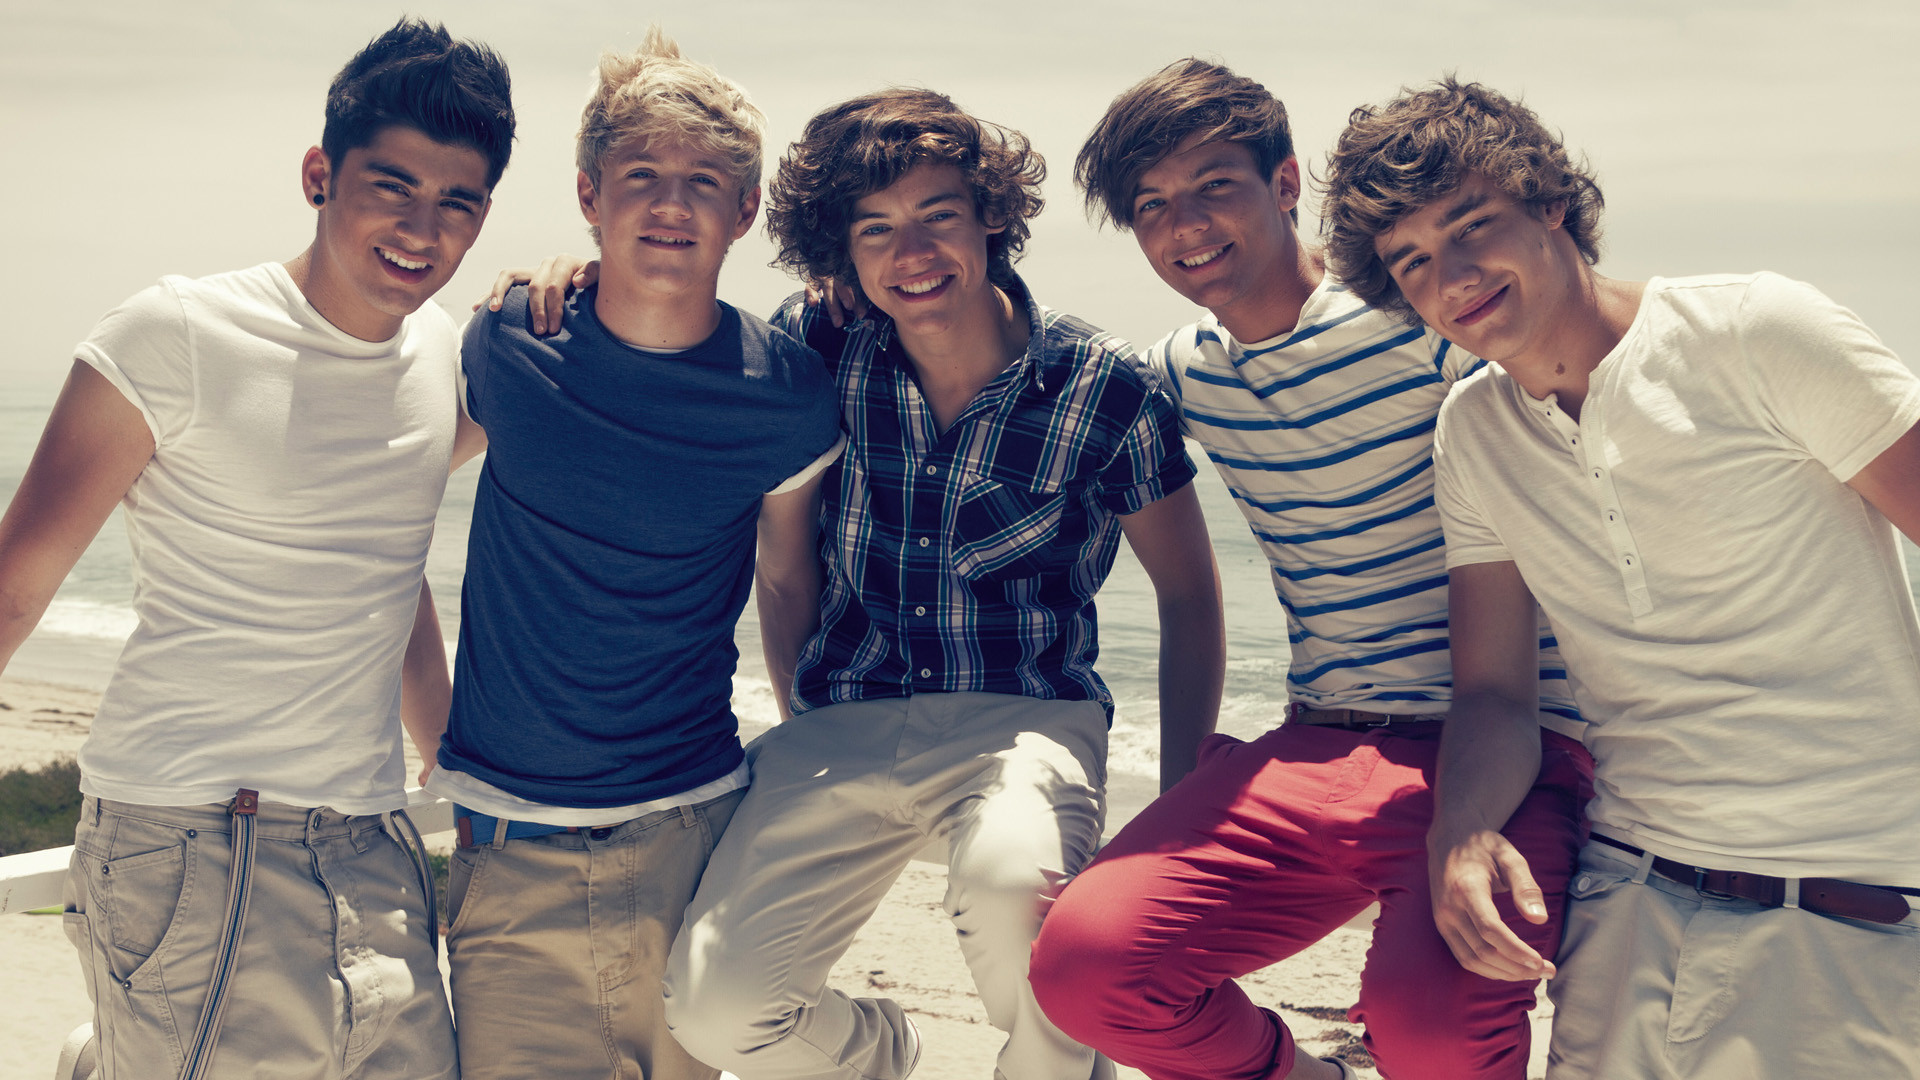 Cute One Direction Wallpapers HD.